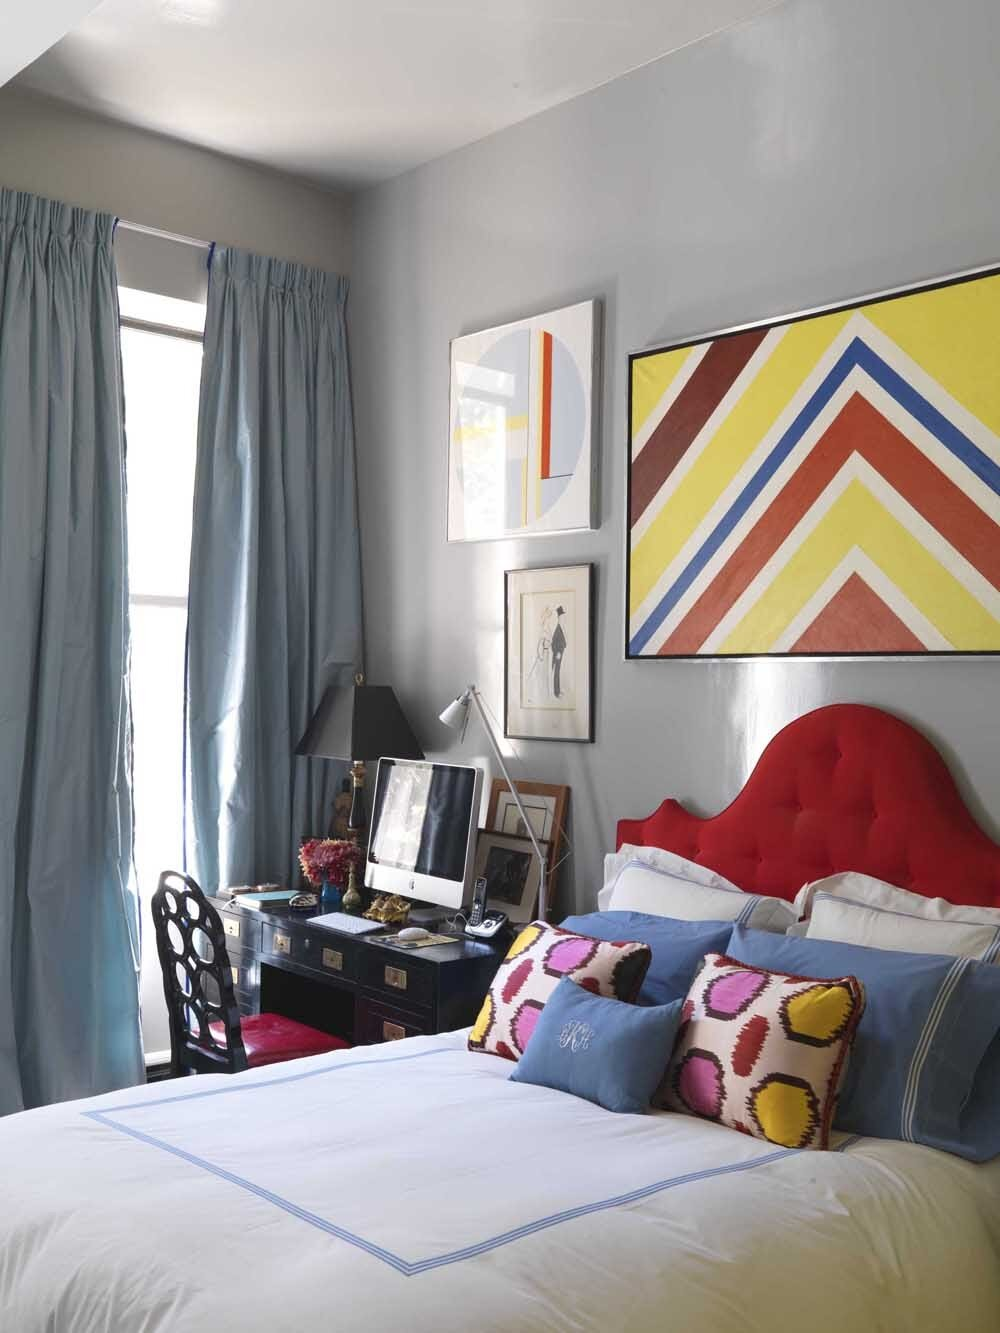 This Redd Kaihoi bedroom mixes clean, simple items with pops of primary colors.